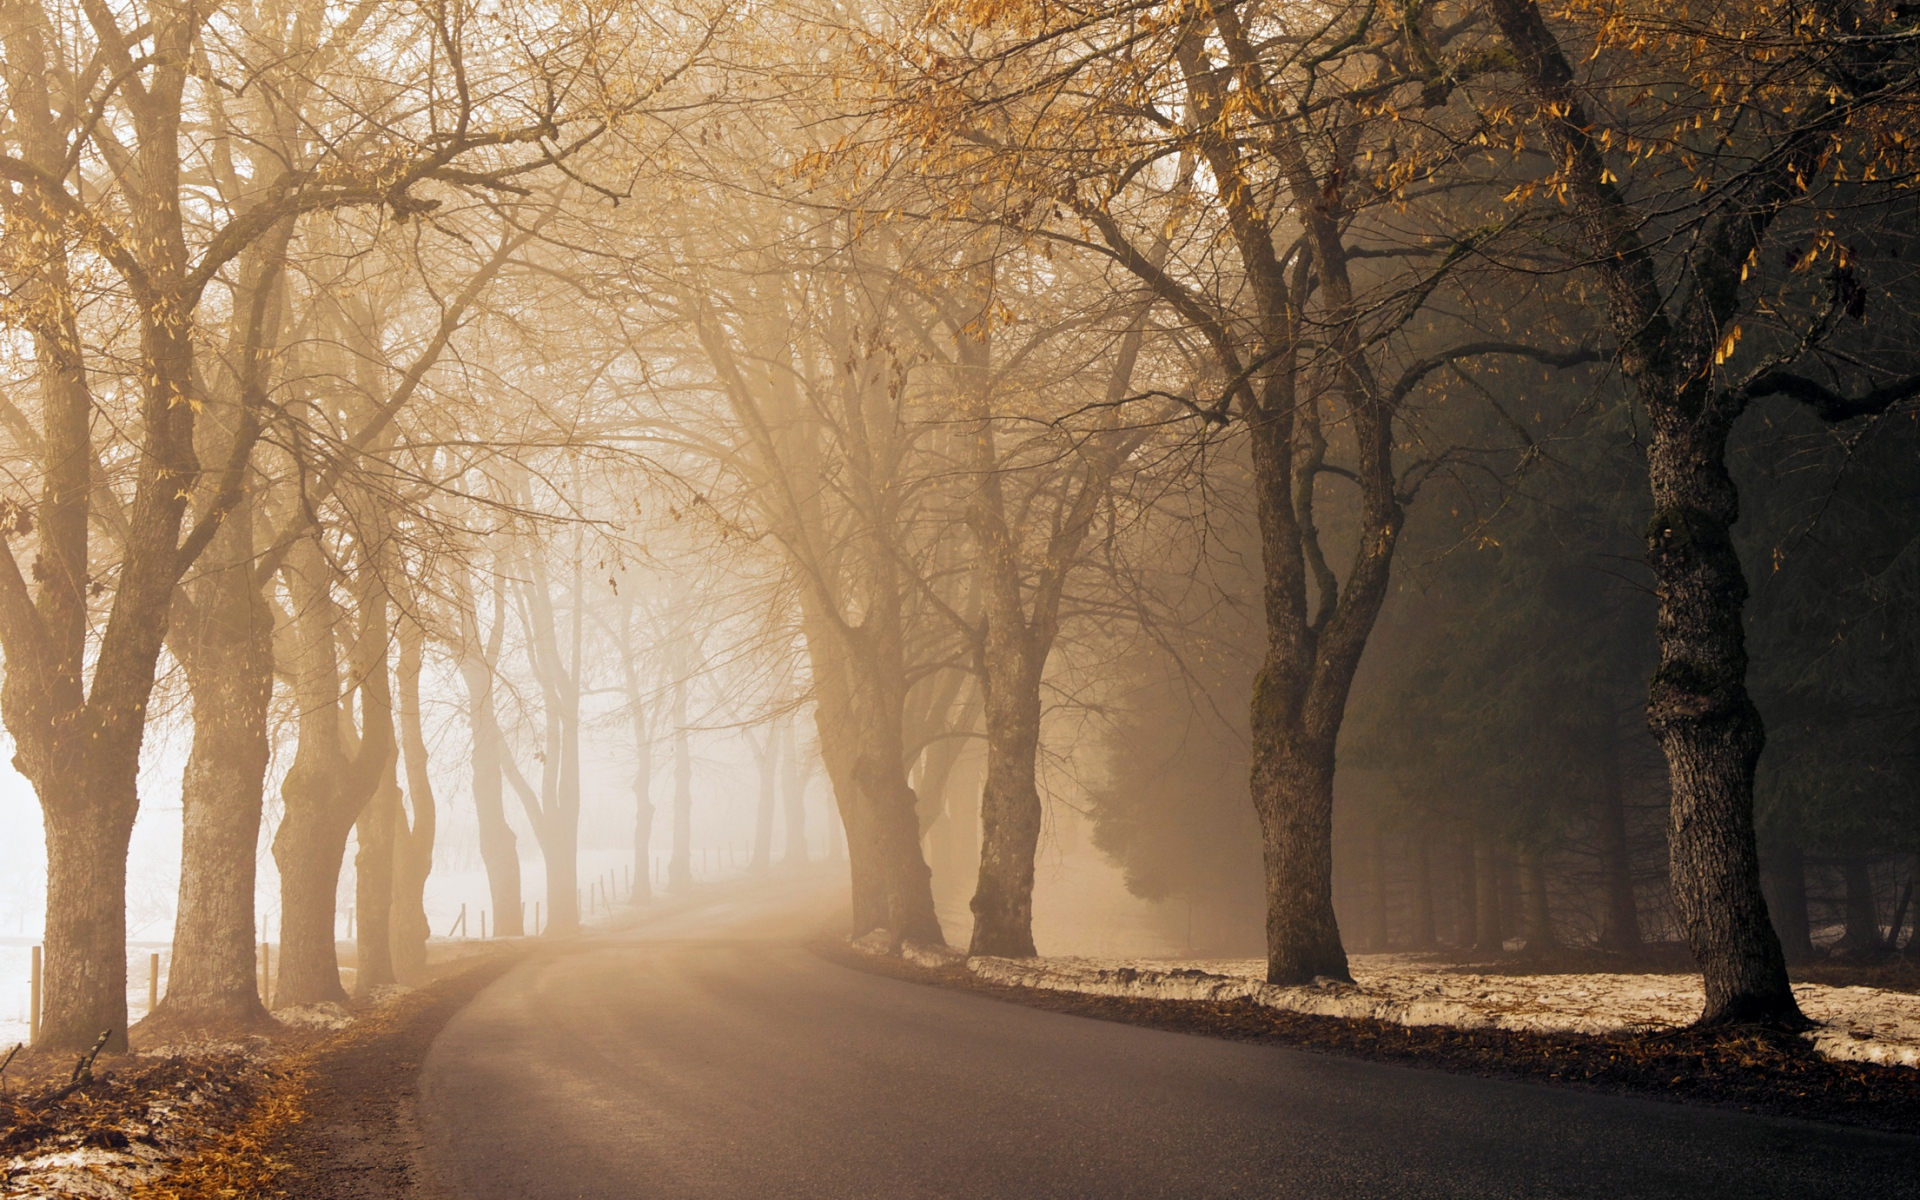 Trees Road Amp Fog Wallpapers Trees Road Amp Fog Stock Photos